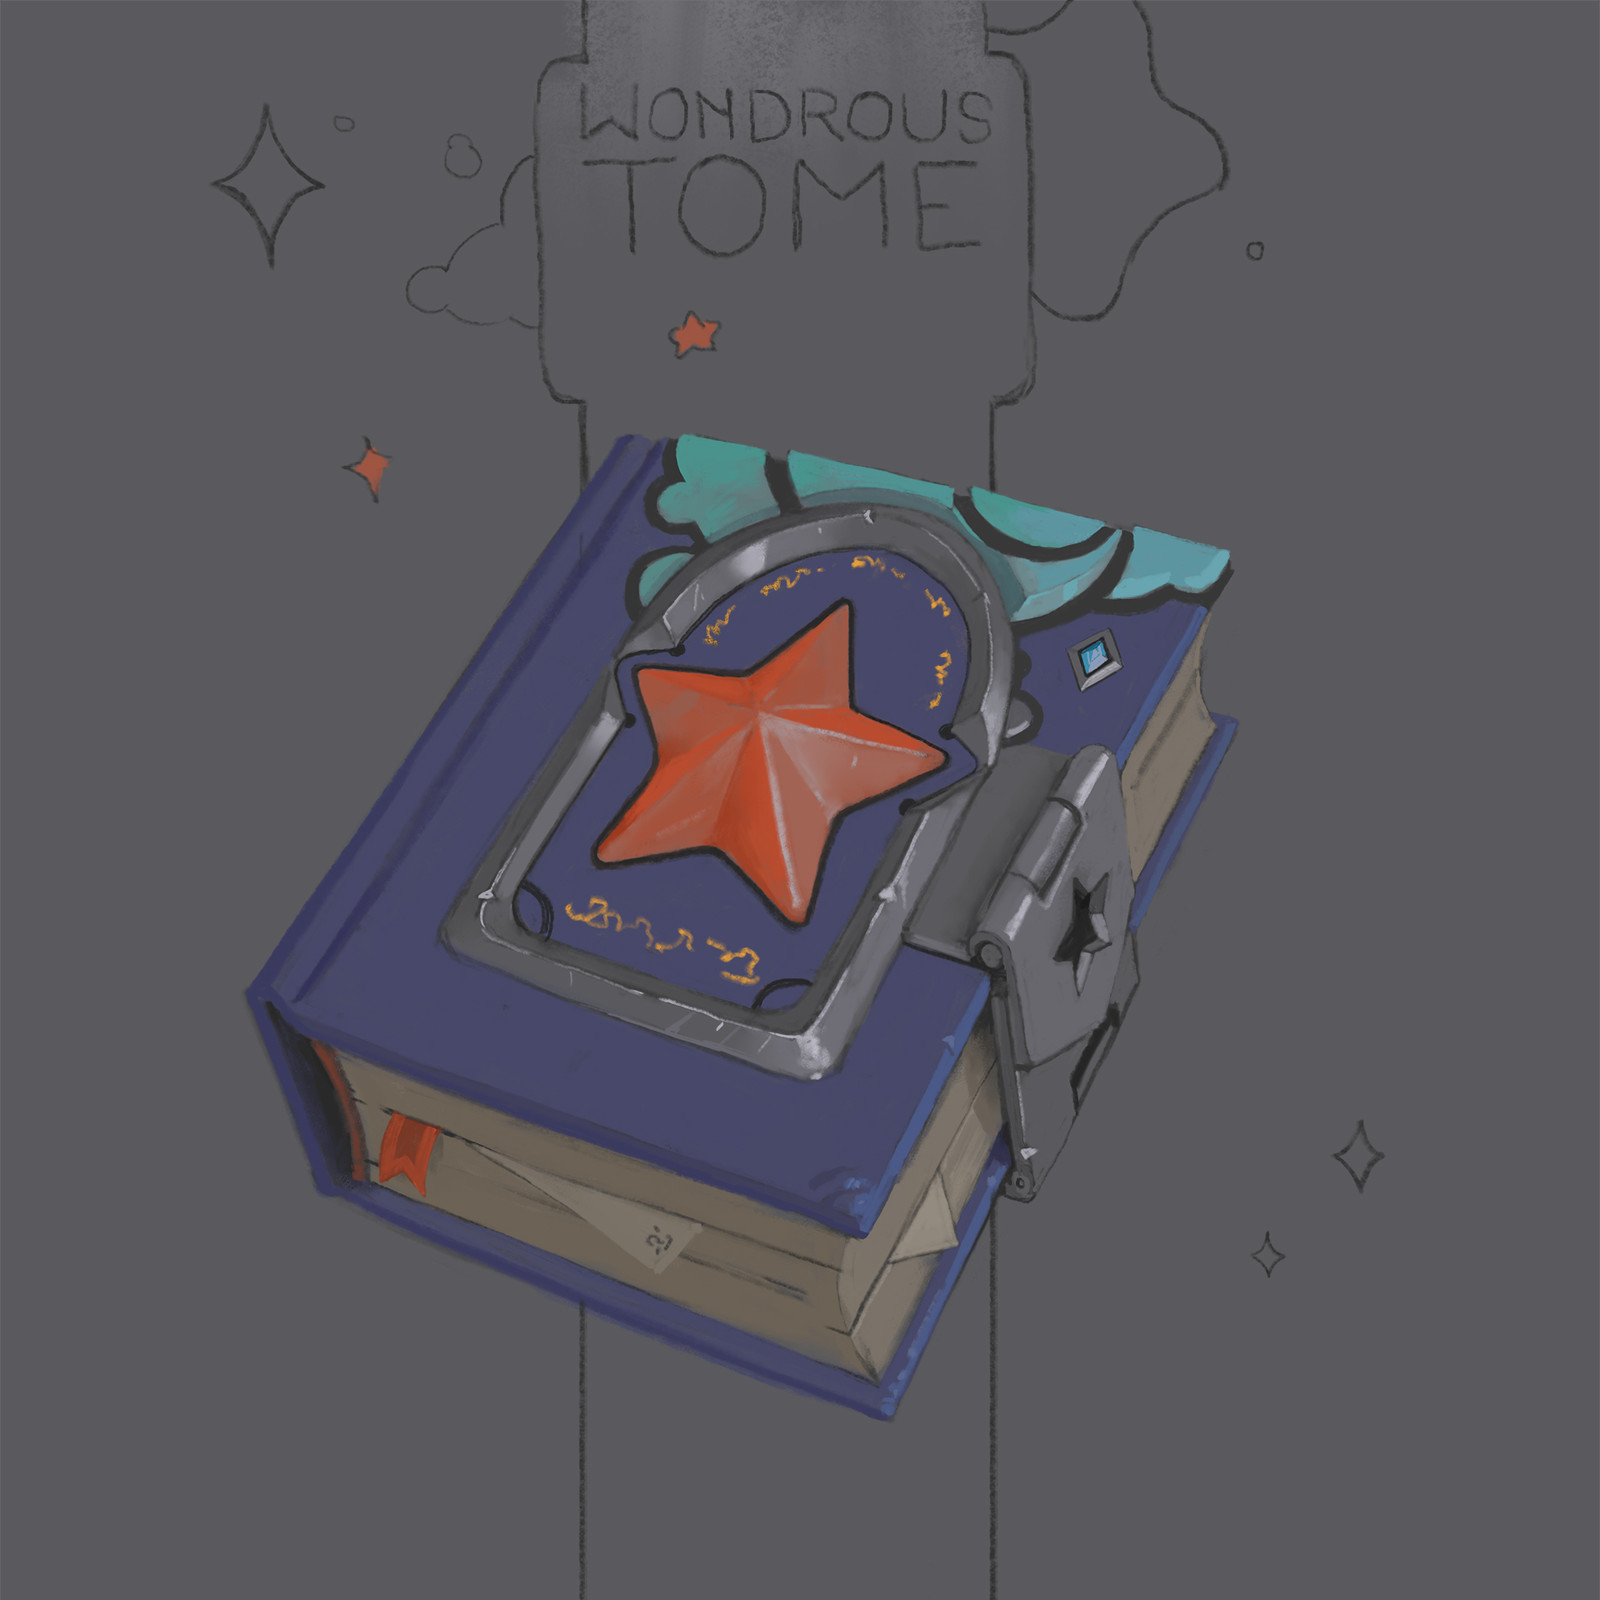 A wondrous tome of the stars.